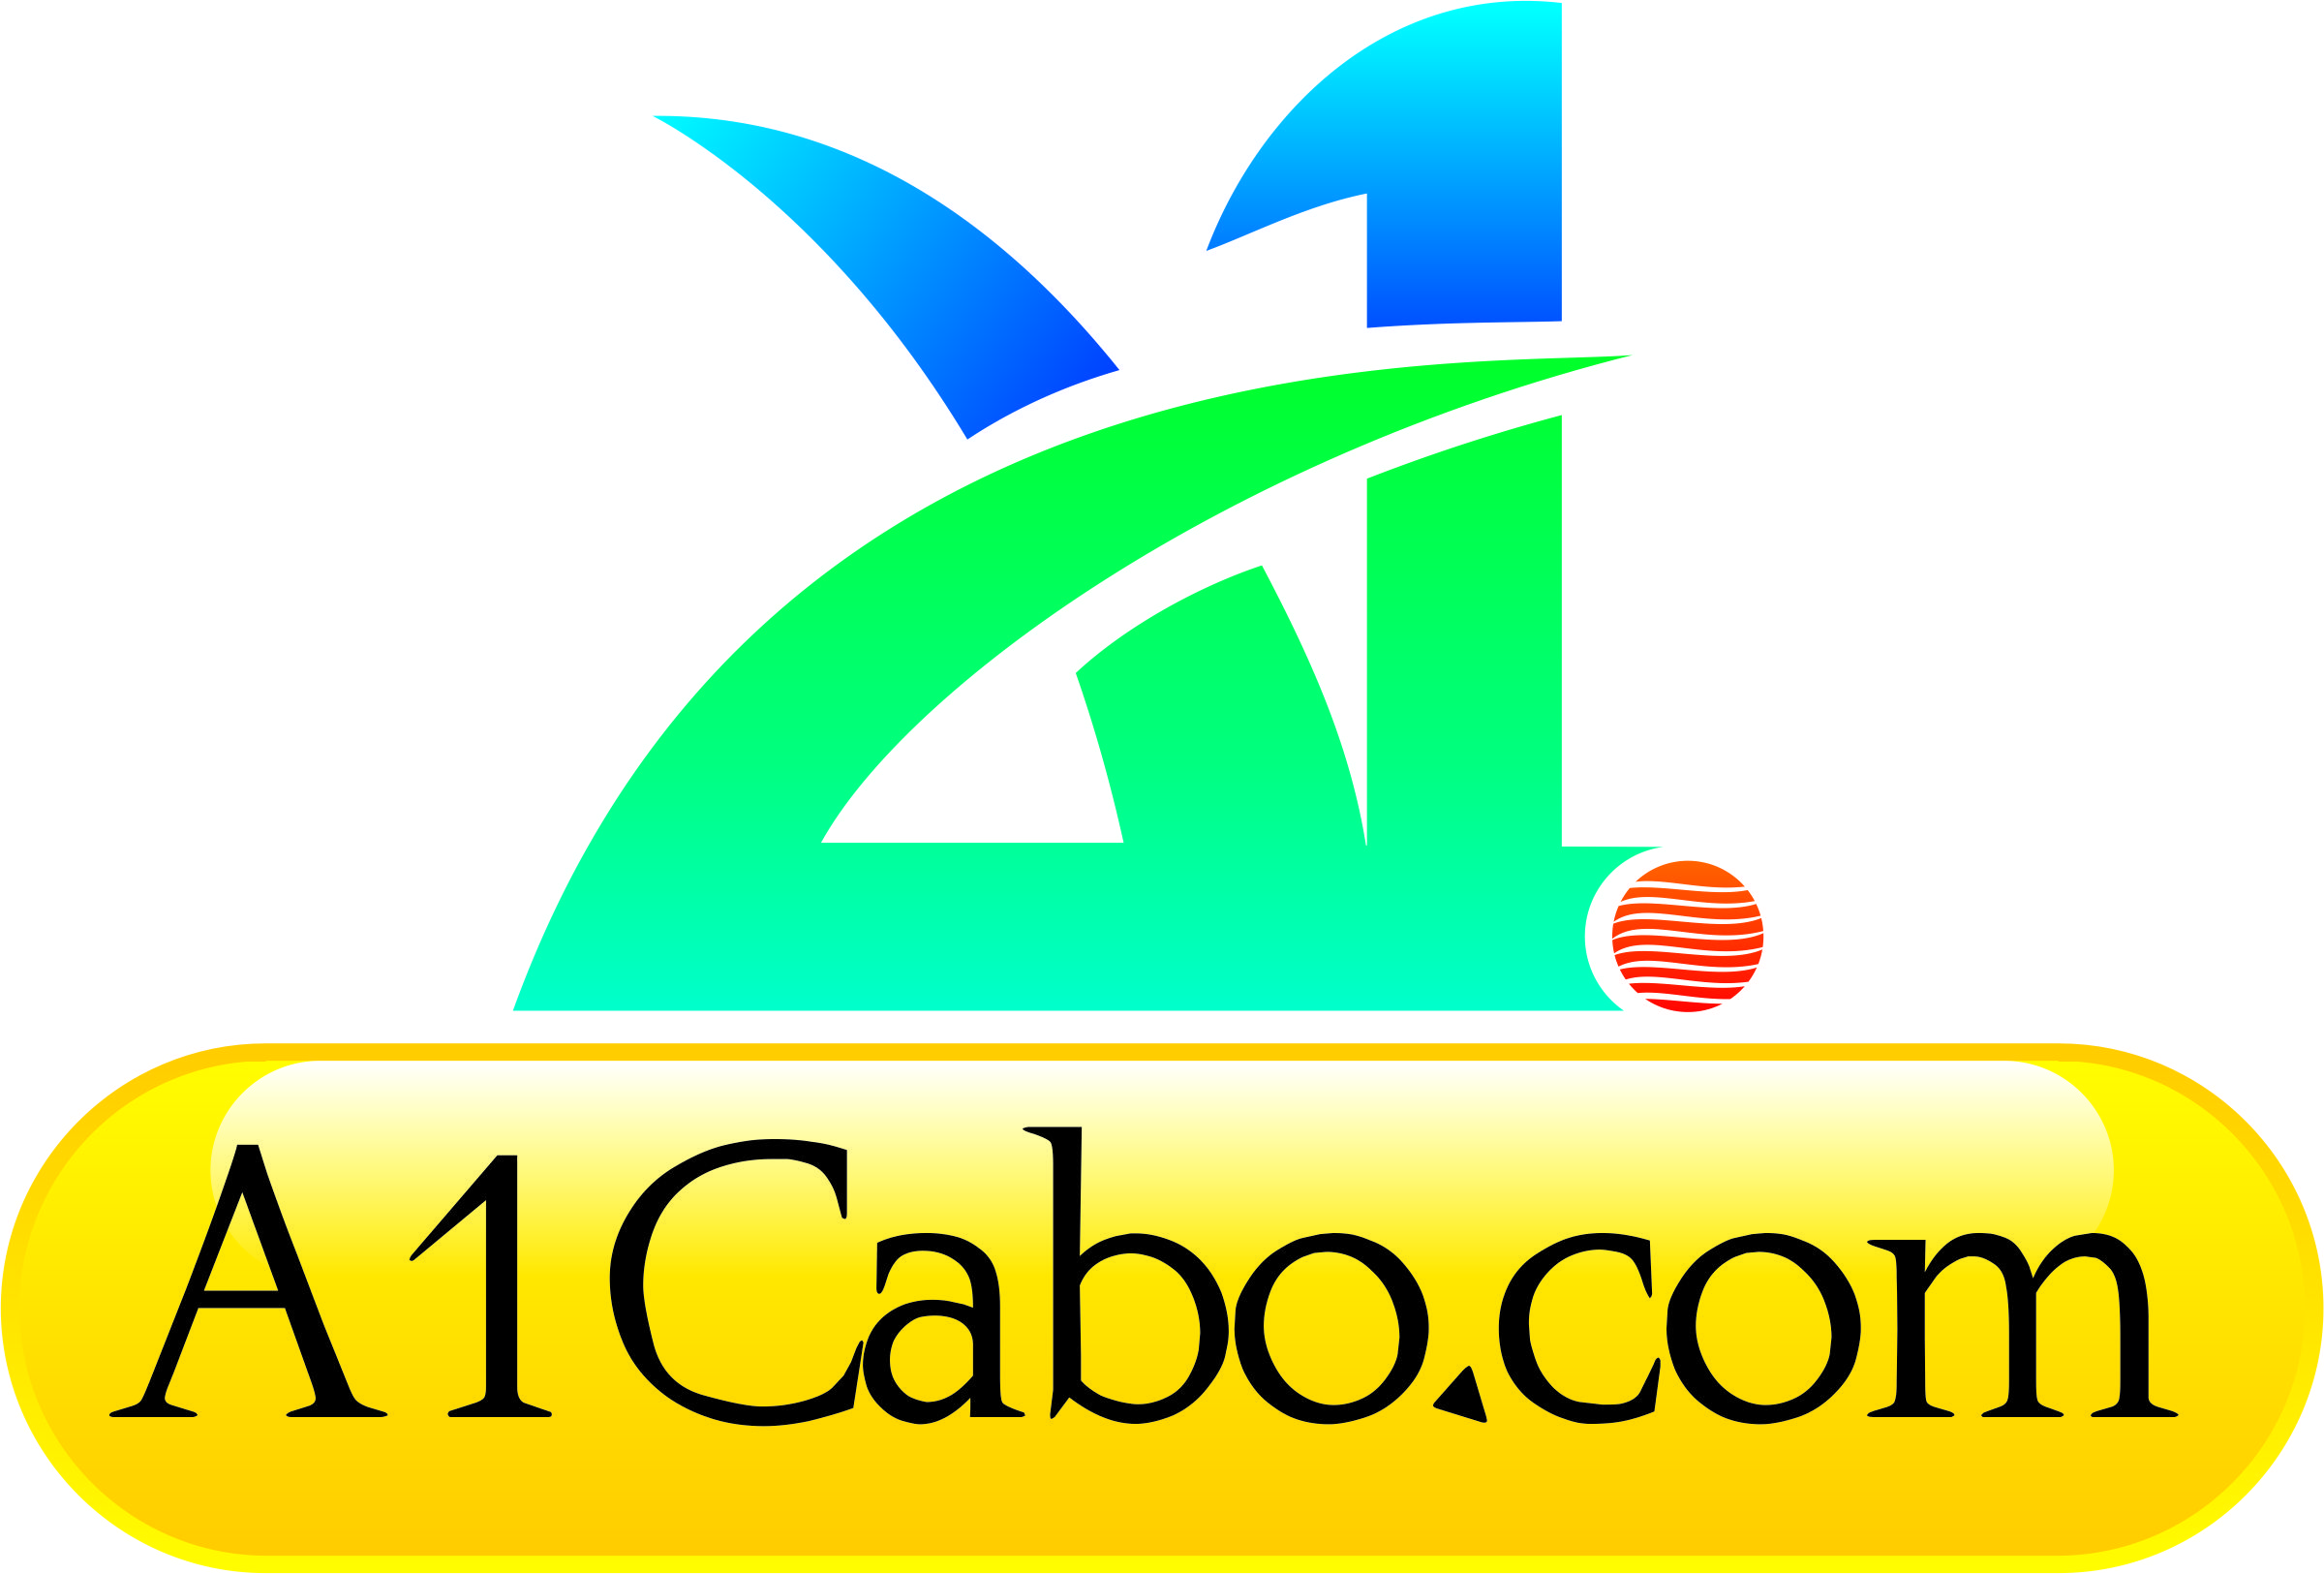 Logo Design by Private User - Entry No. 102 in the Logo Design Contest Inspiring Logo Design for A1Cabo.com.